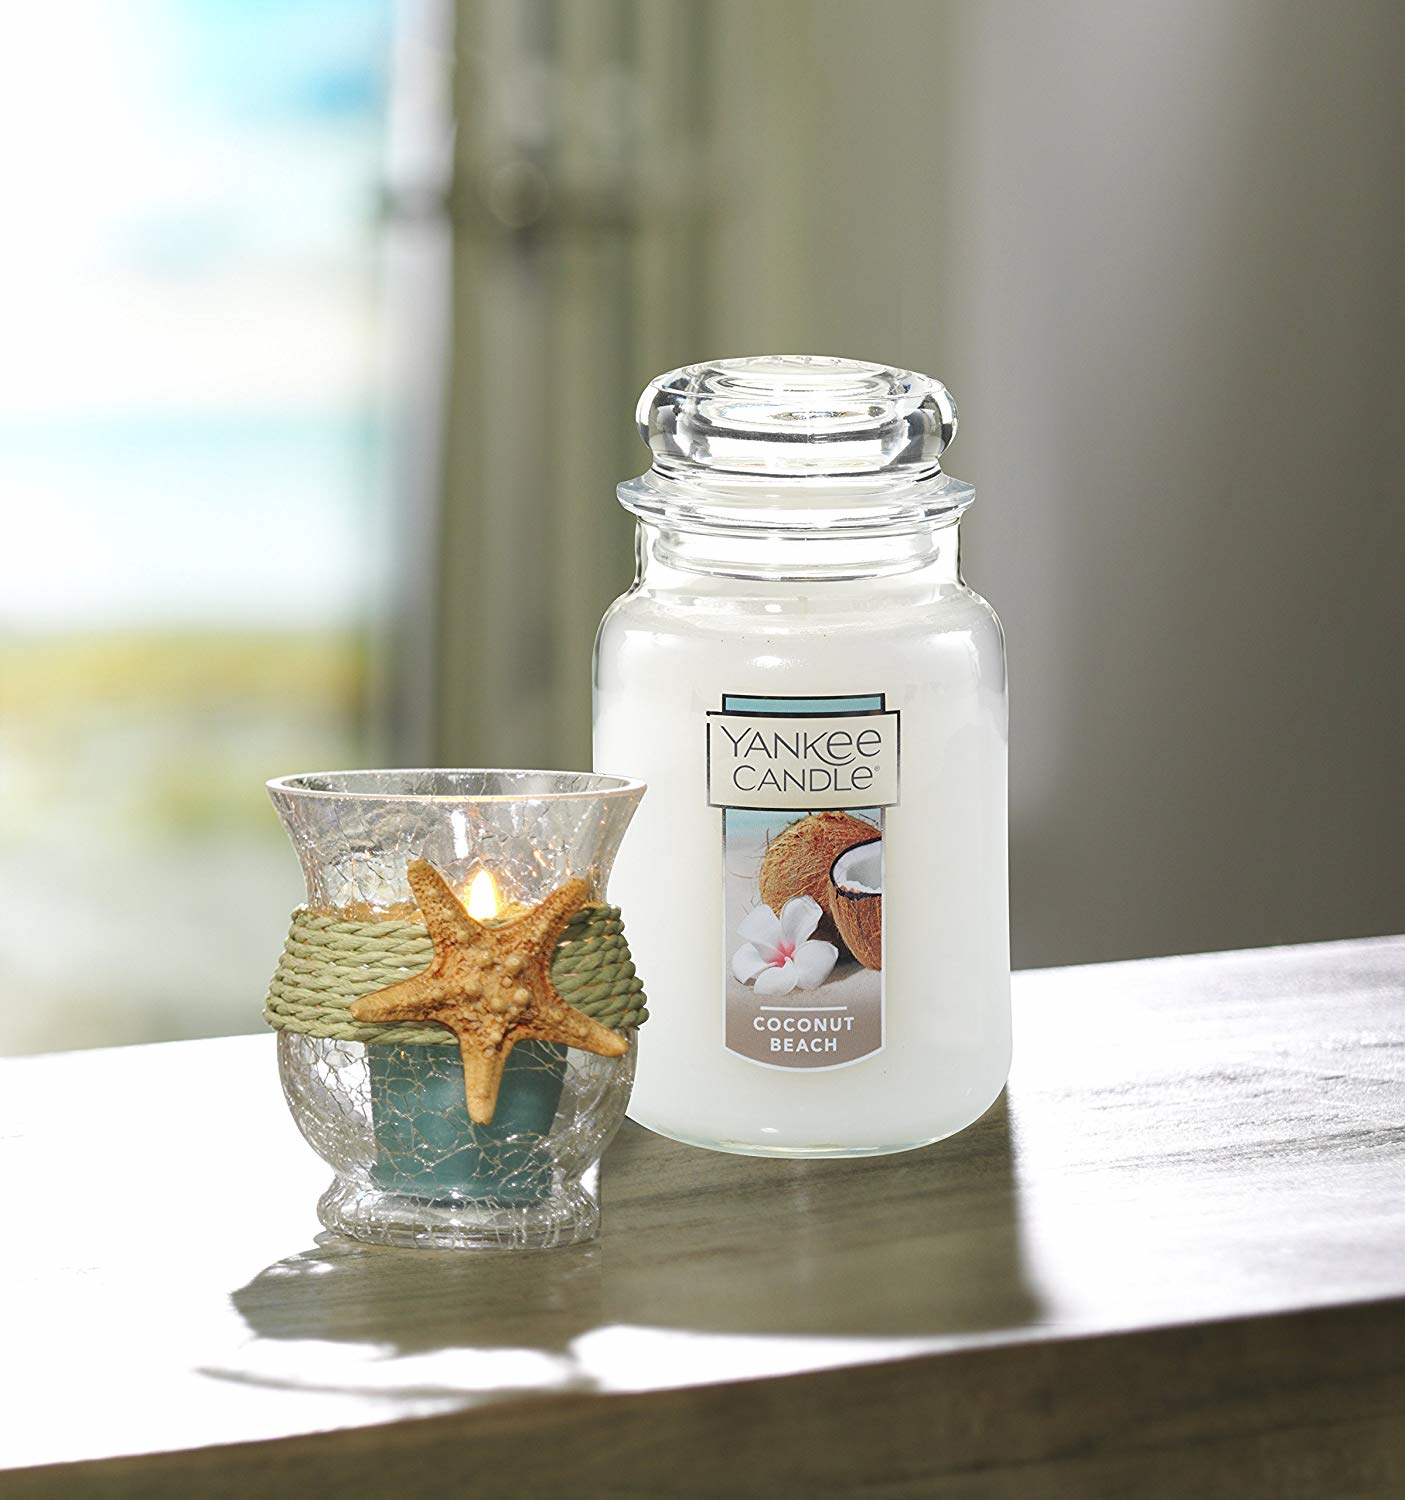 Yankee Candle Large Jar Candle, Coconut Beach (With Images